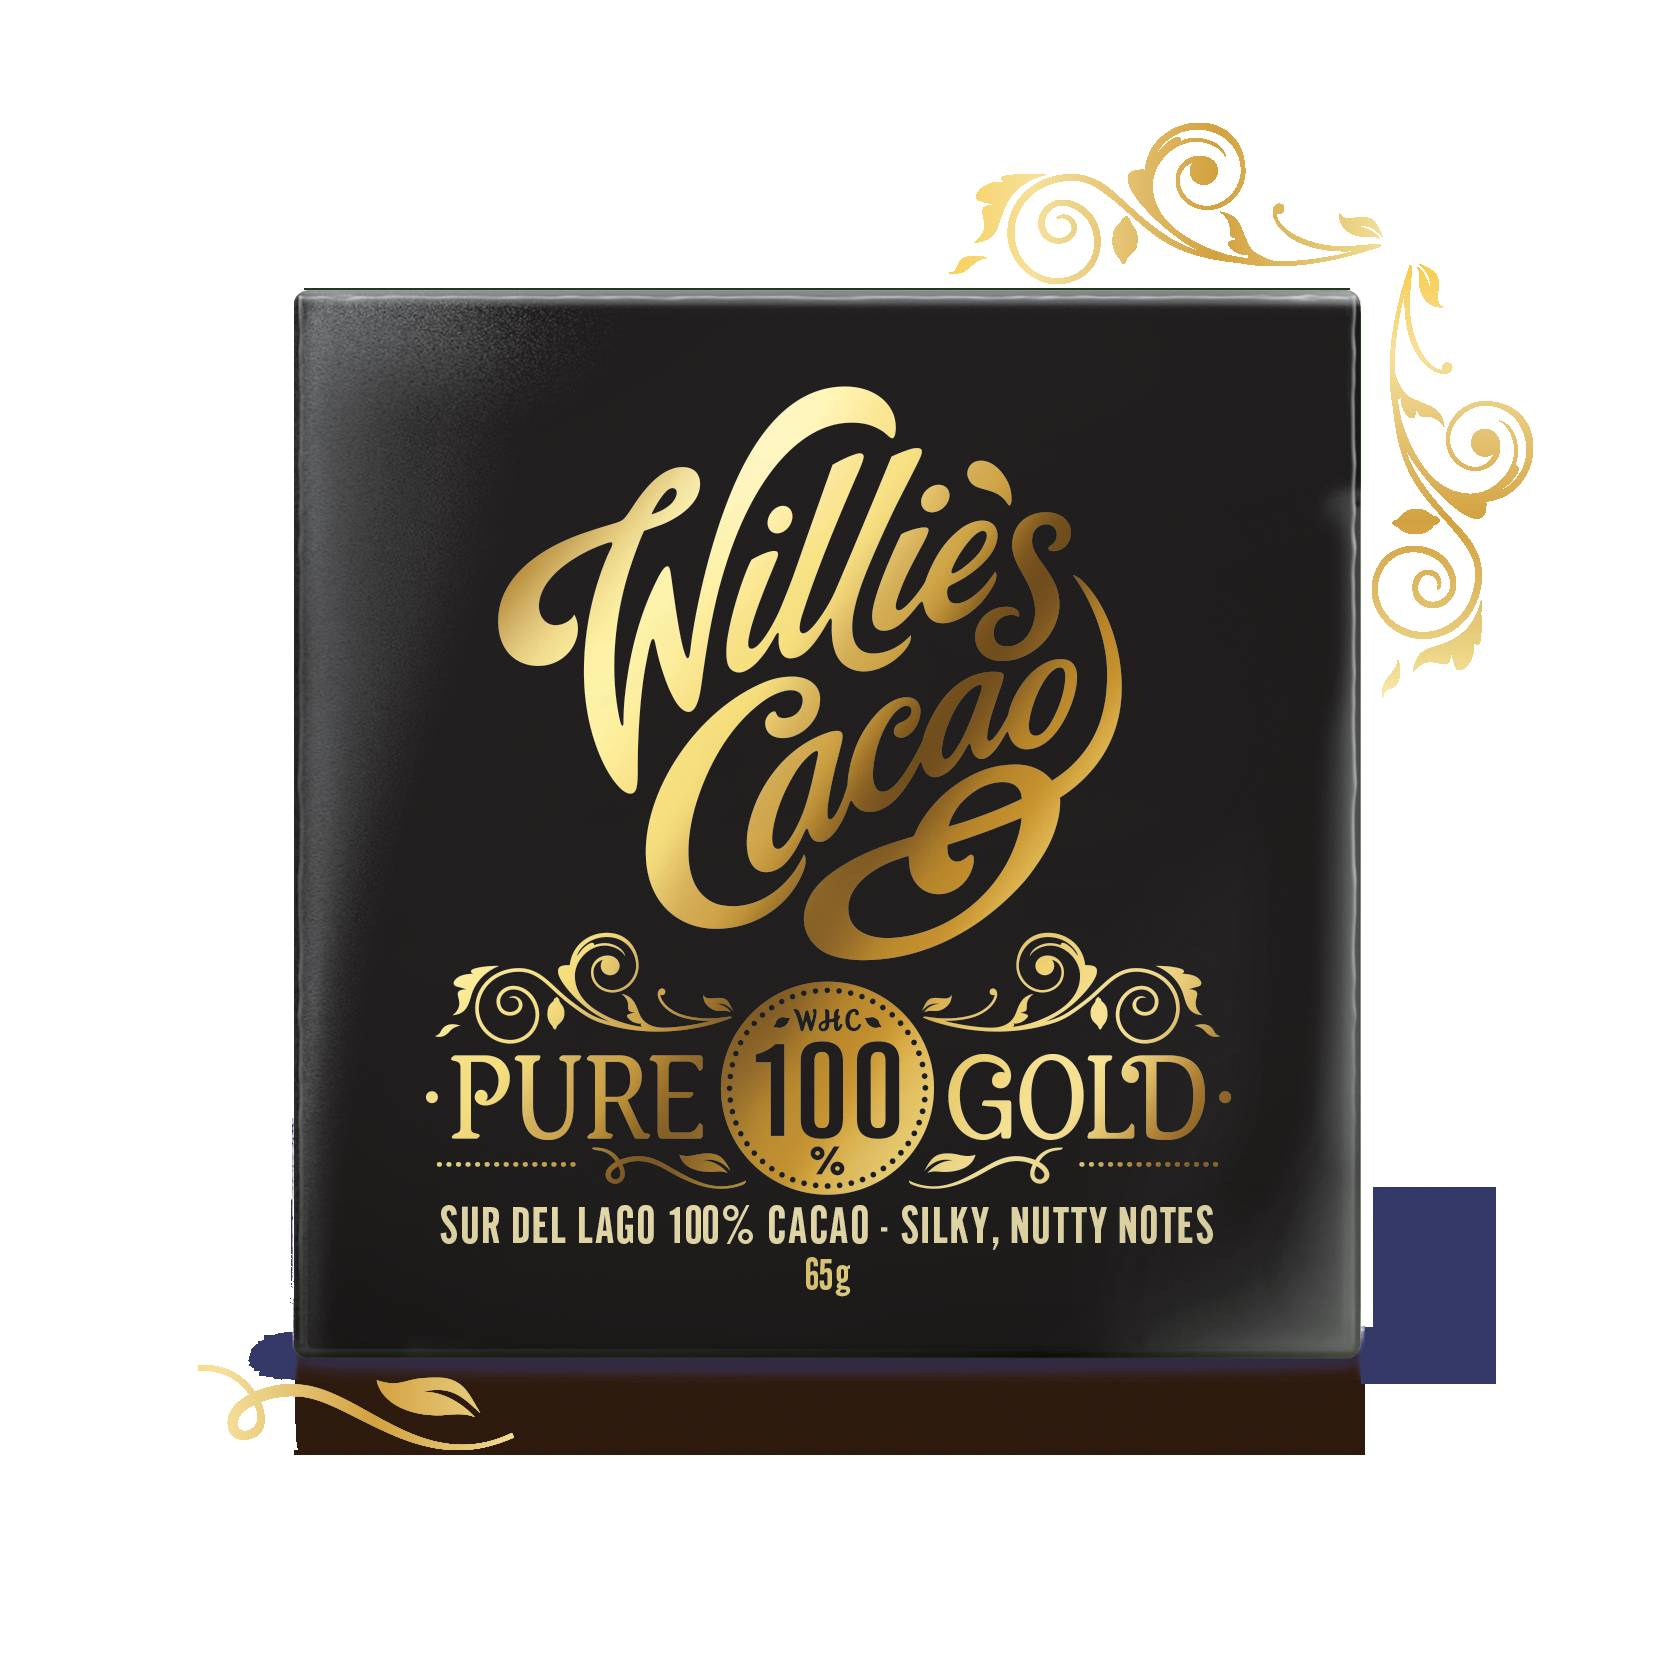 Willie's 100% Cacao